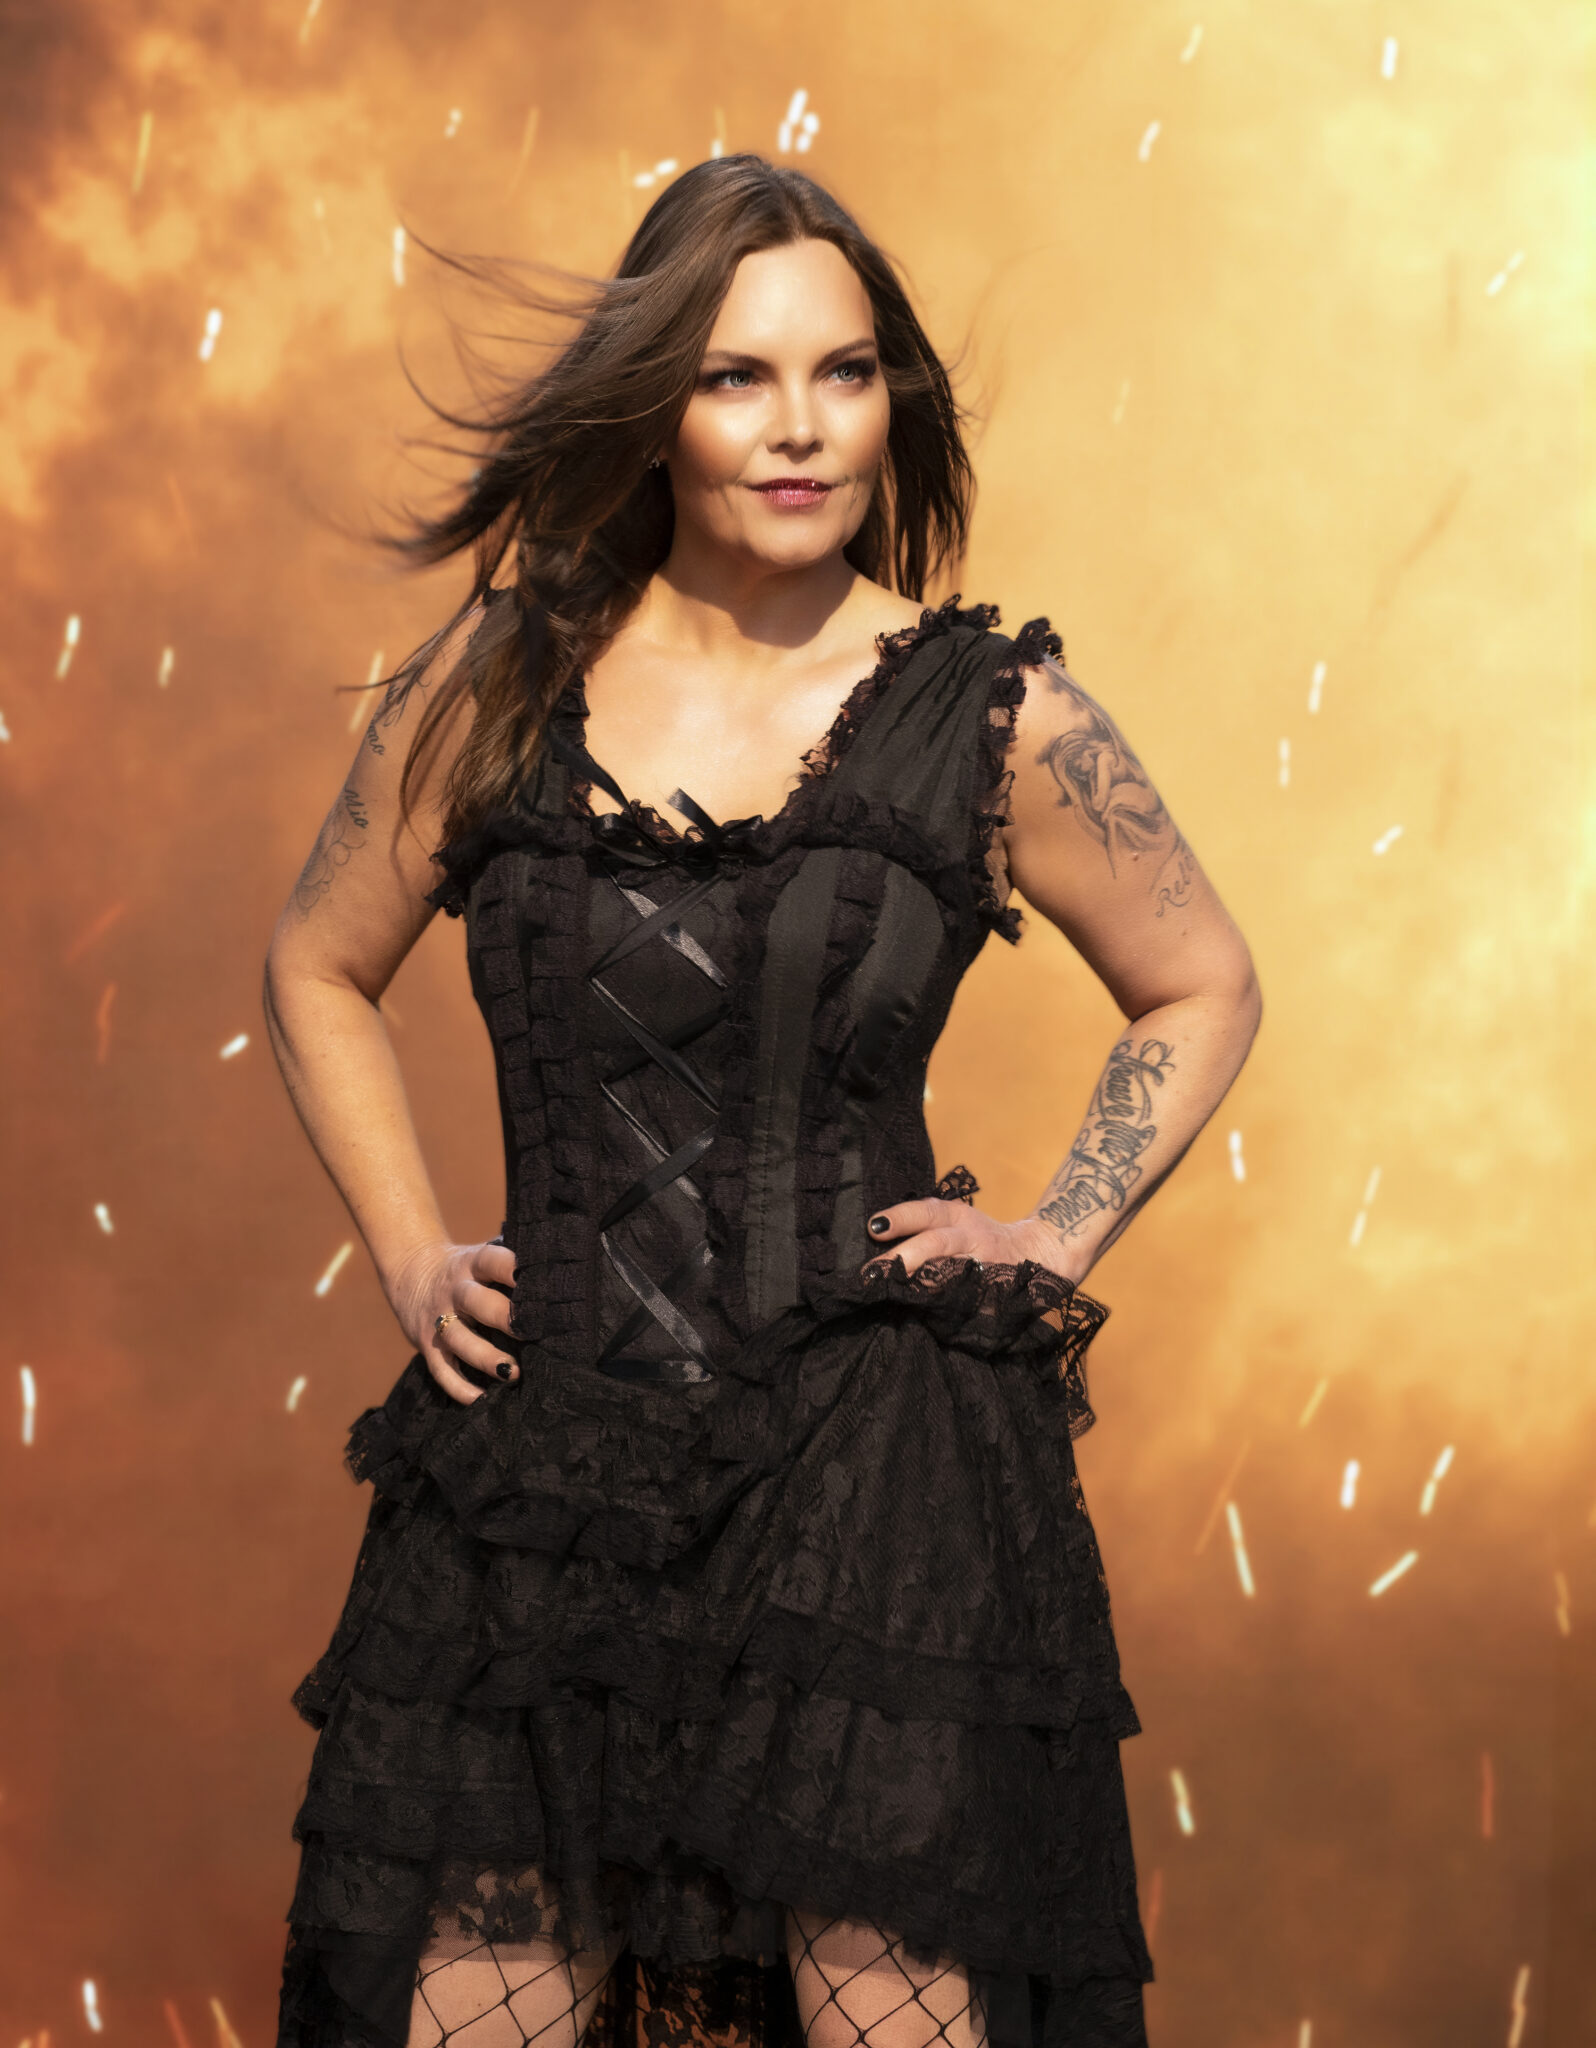 Anette Olzon Delivers Another Great Album With 'Strong'